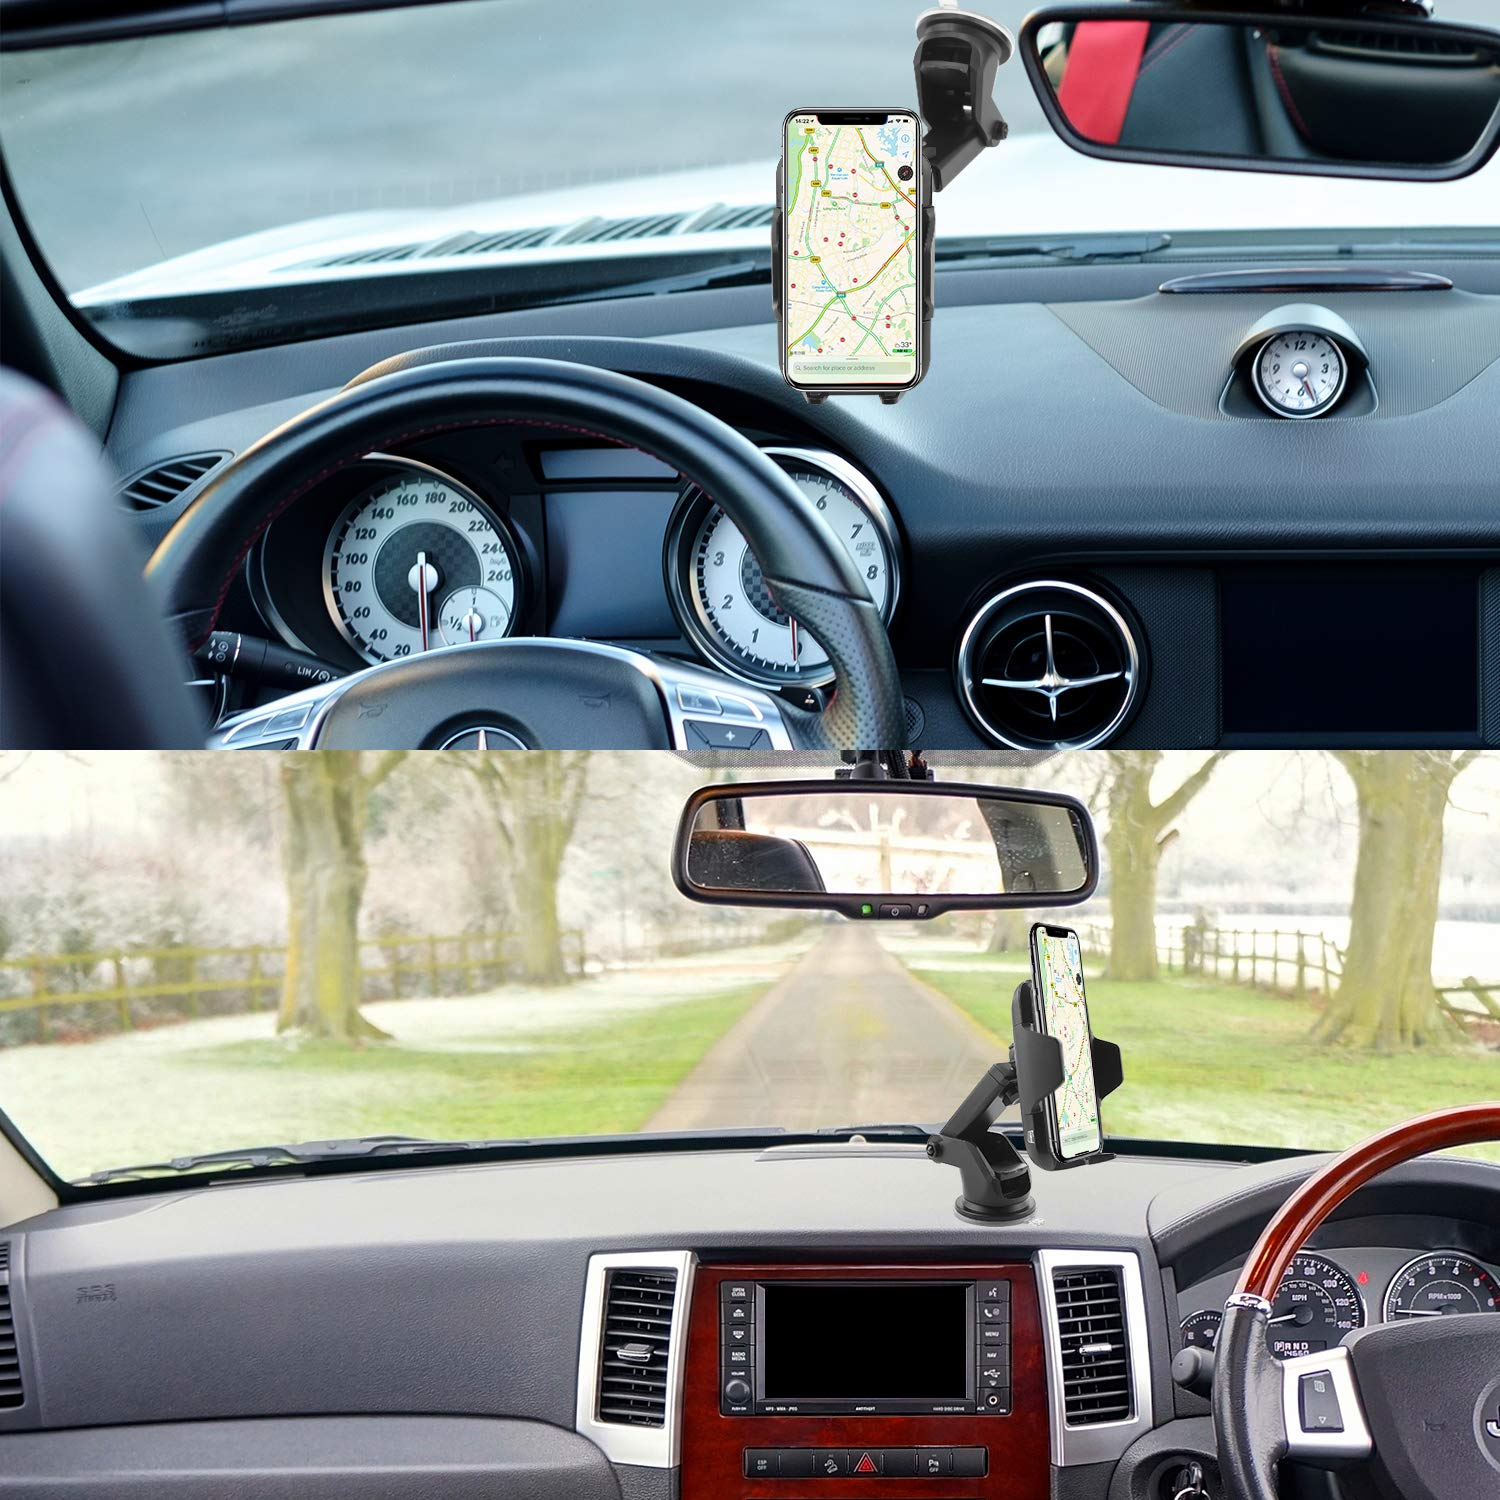 Wireless Car Charger Wireless Car Mount Air Vent Phone Holder Infrared/&Touch Sensing 5//10//15W Fast Car Charger Compatible with iPhone XS//X//8//8 Plus Samsung Galaxy S8//S8+//S7 Edge Qi-Enabled Device JINKAKA 5558979334